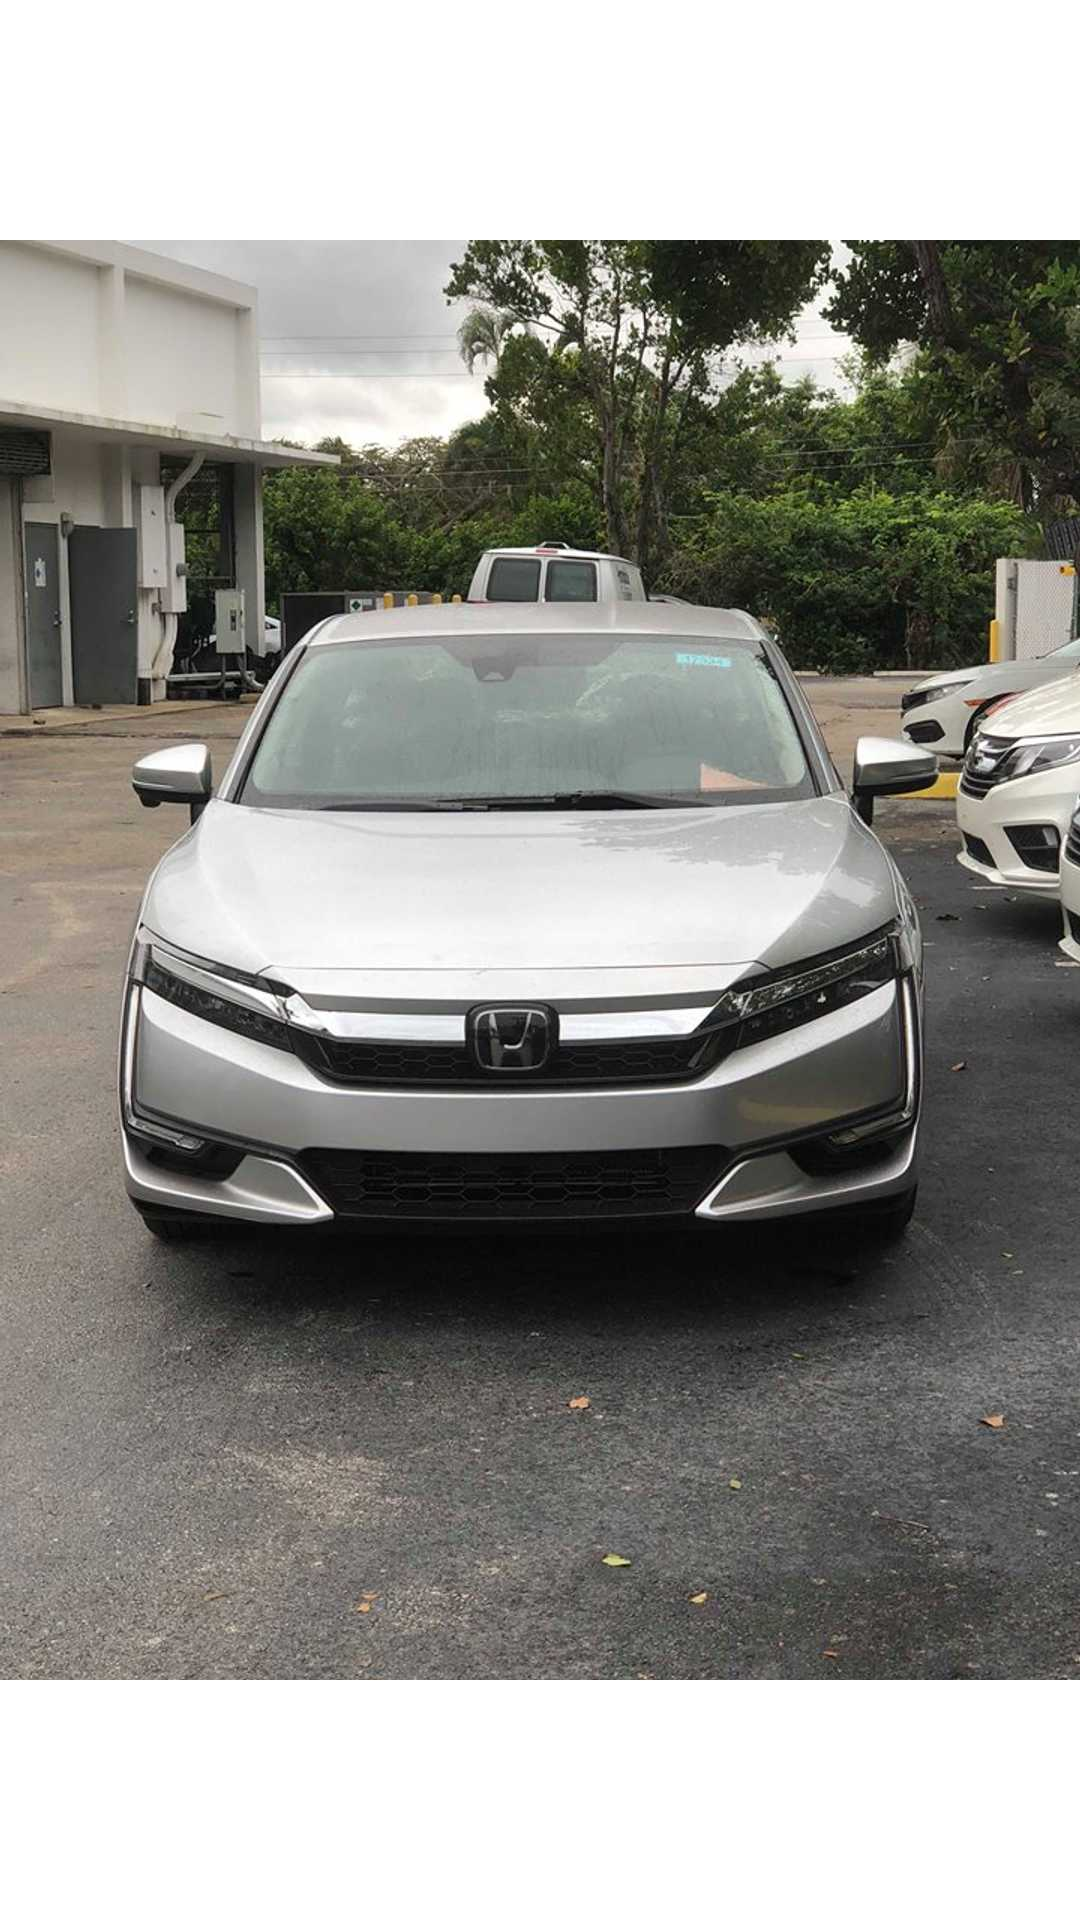 Honda Offers $6,500 Lease Credit On Clarity PHEV, But Only